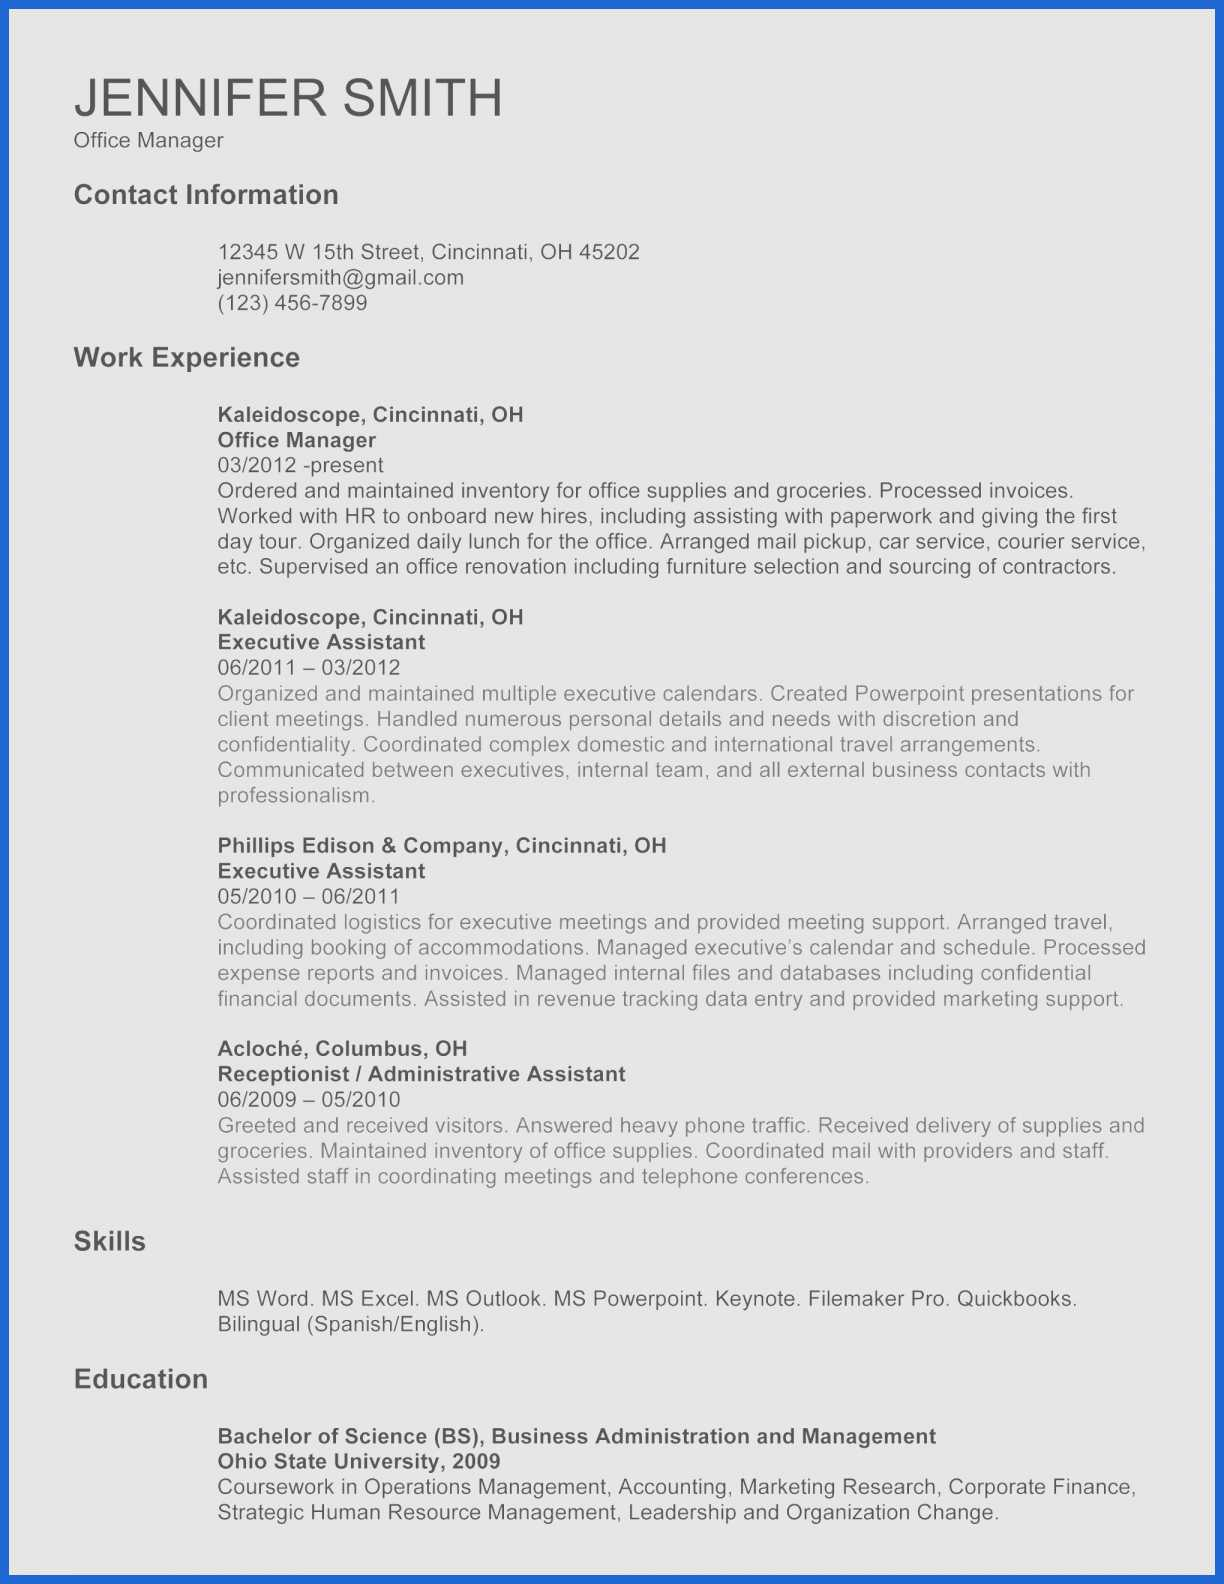 Car Loan Spreadsheet 20 Inspirational Resume Template Restaurant  Intended For Resume Spreadsheet